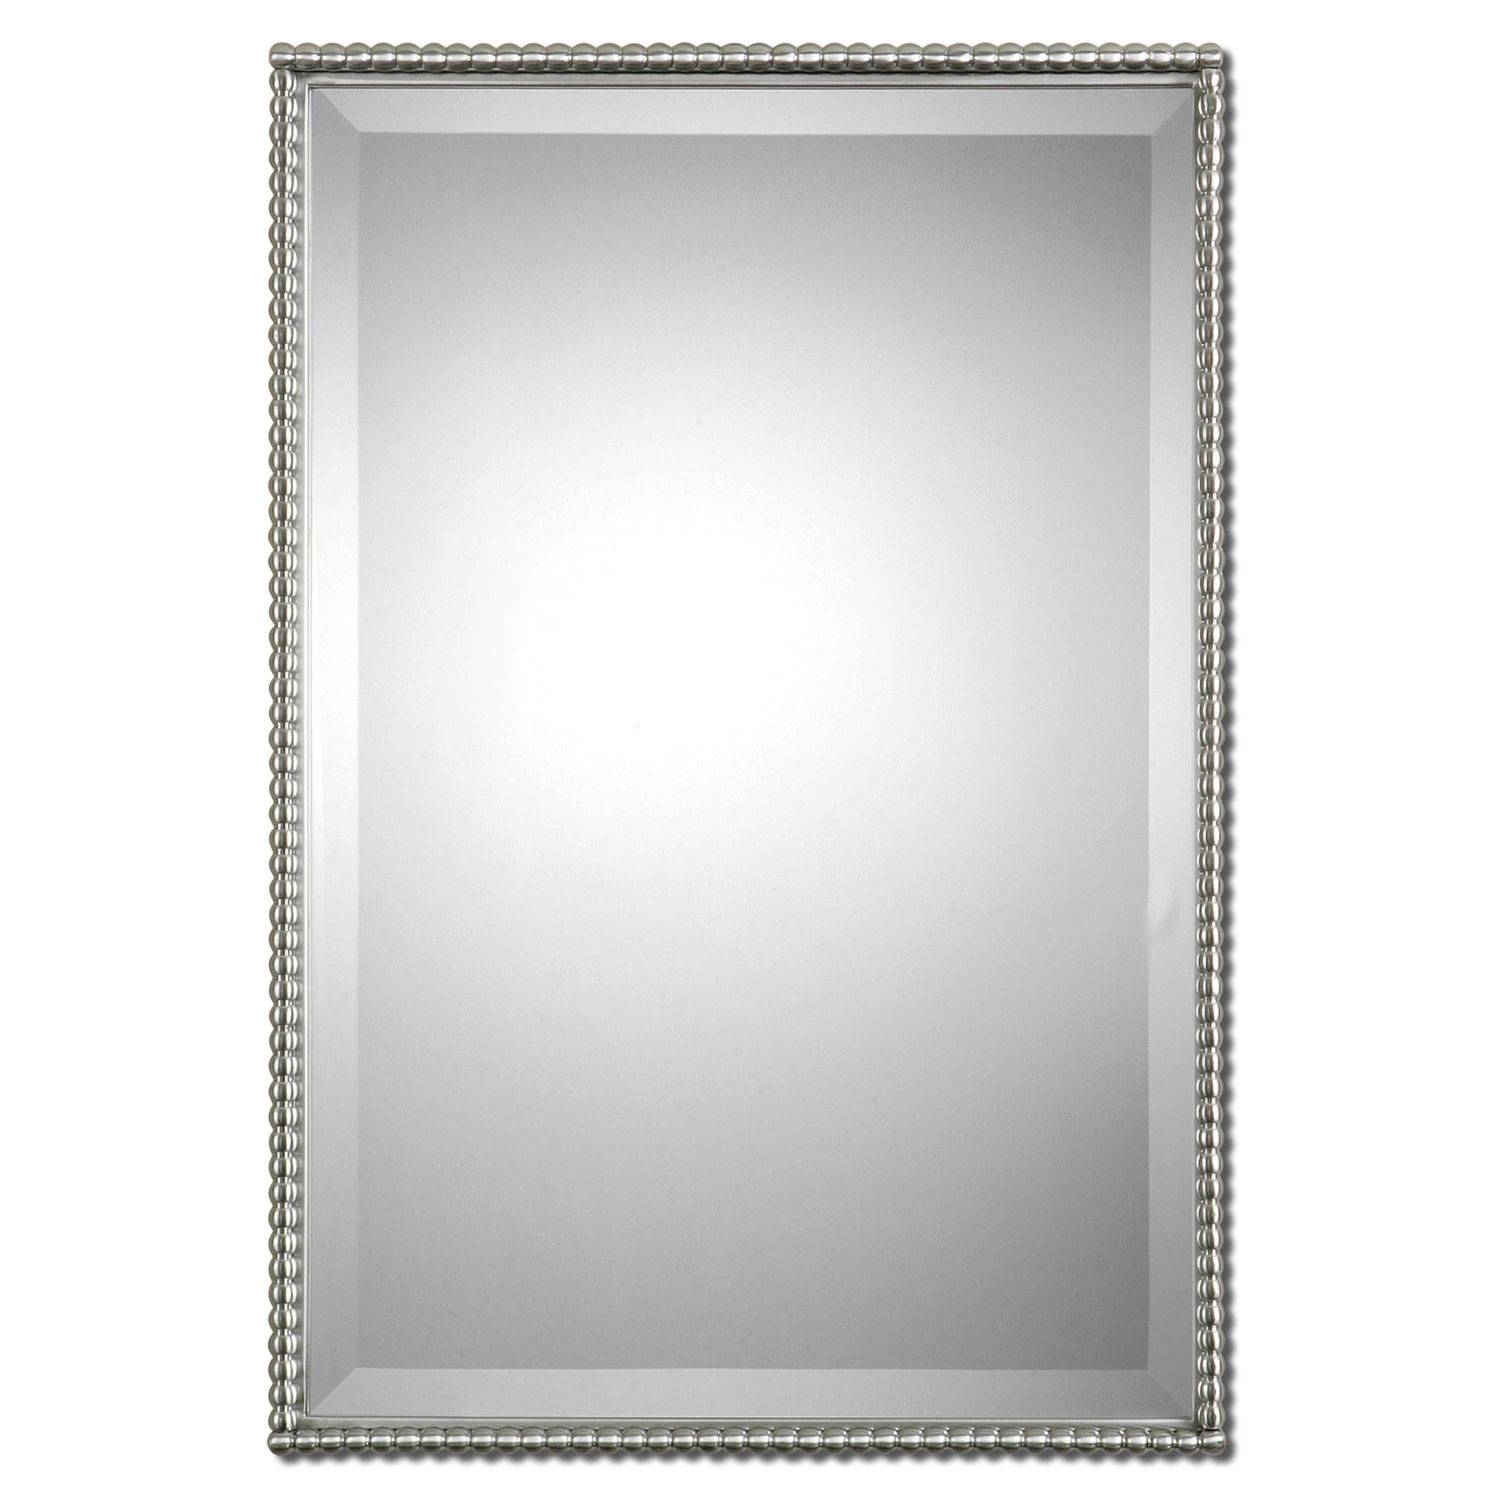 Wall Mirrors, Bathroom Mirrors | Bellacor in Silver Rectangular Bathroom Mirrors (Image 25 of 25)